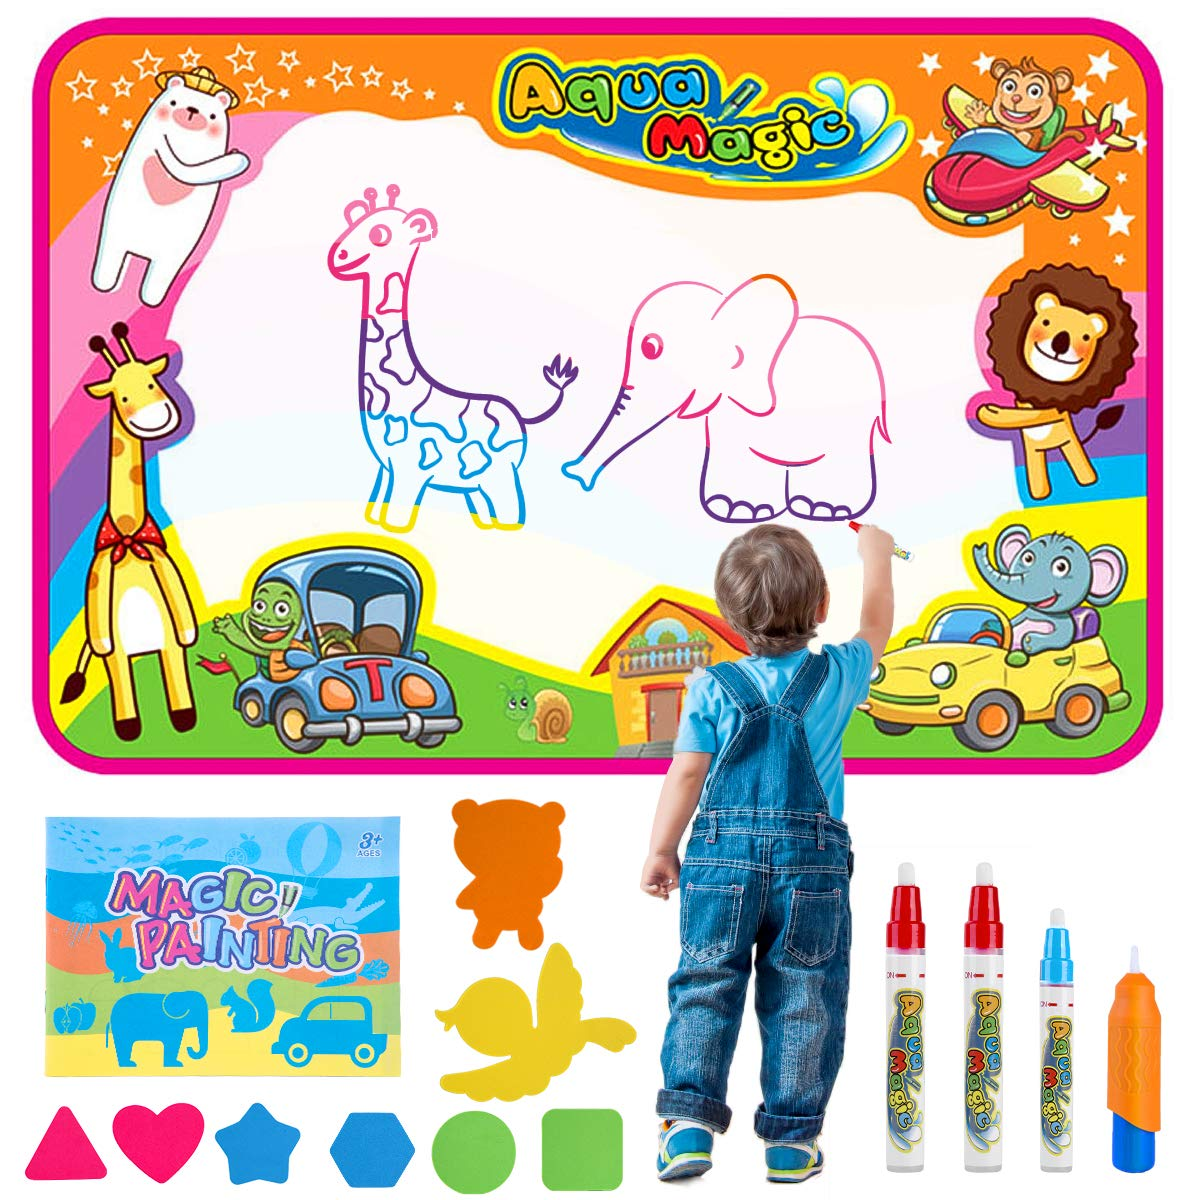 Baby noah aqua magic doodle mat for kids drawing on magic water mat mess free painting for toddler painting board suitable for family kids activity